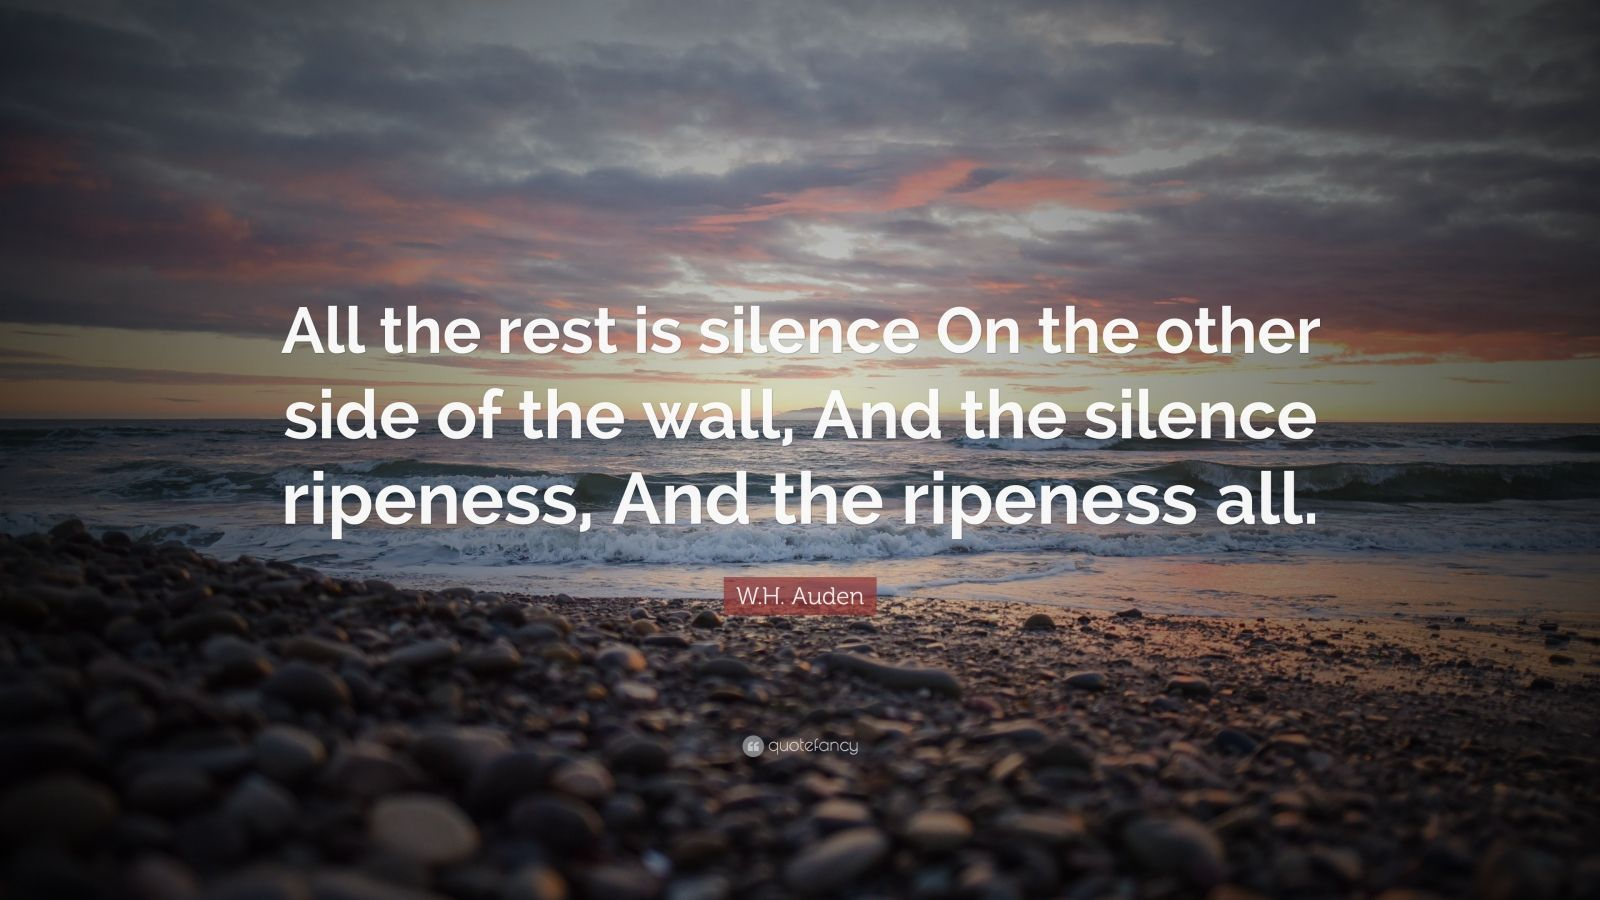 """W.H. Auden Quote: """"All the rest is silence On the other side of the wall, And the silence ripeness, And the ripeness all."""""""